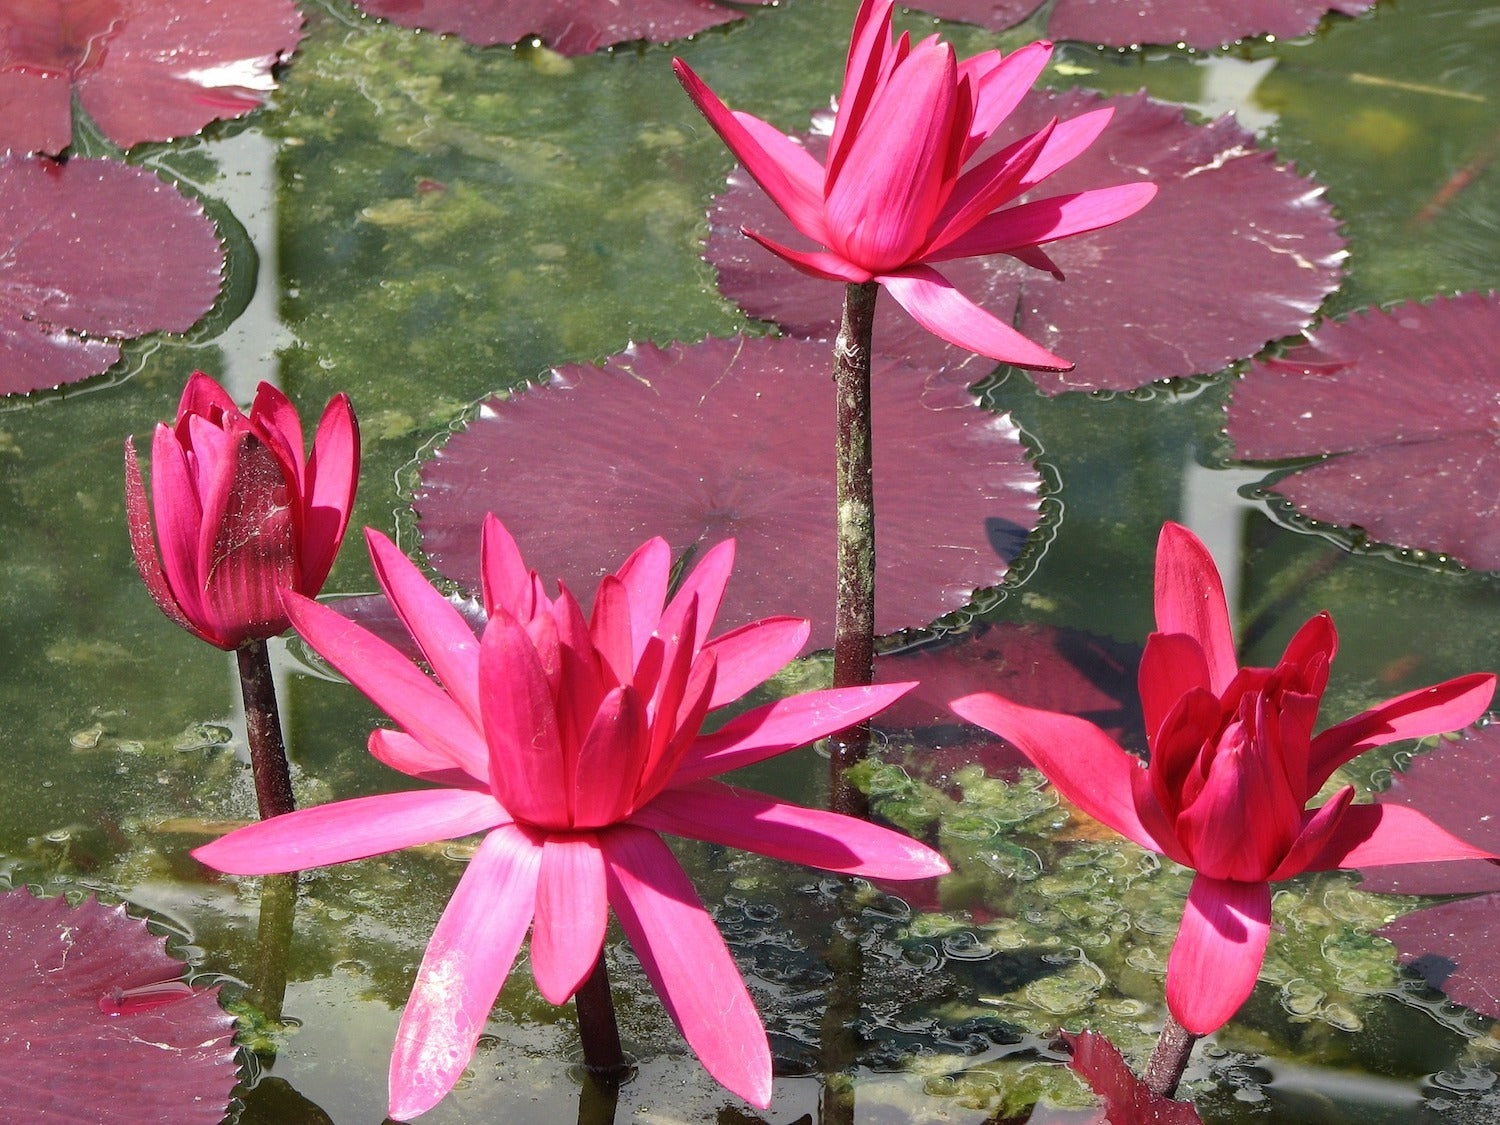 Red Cup Water Lilies LOTUSWEI flower essences